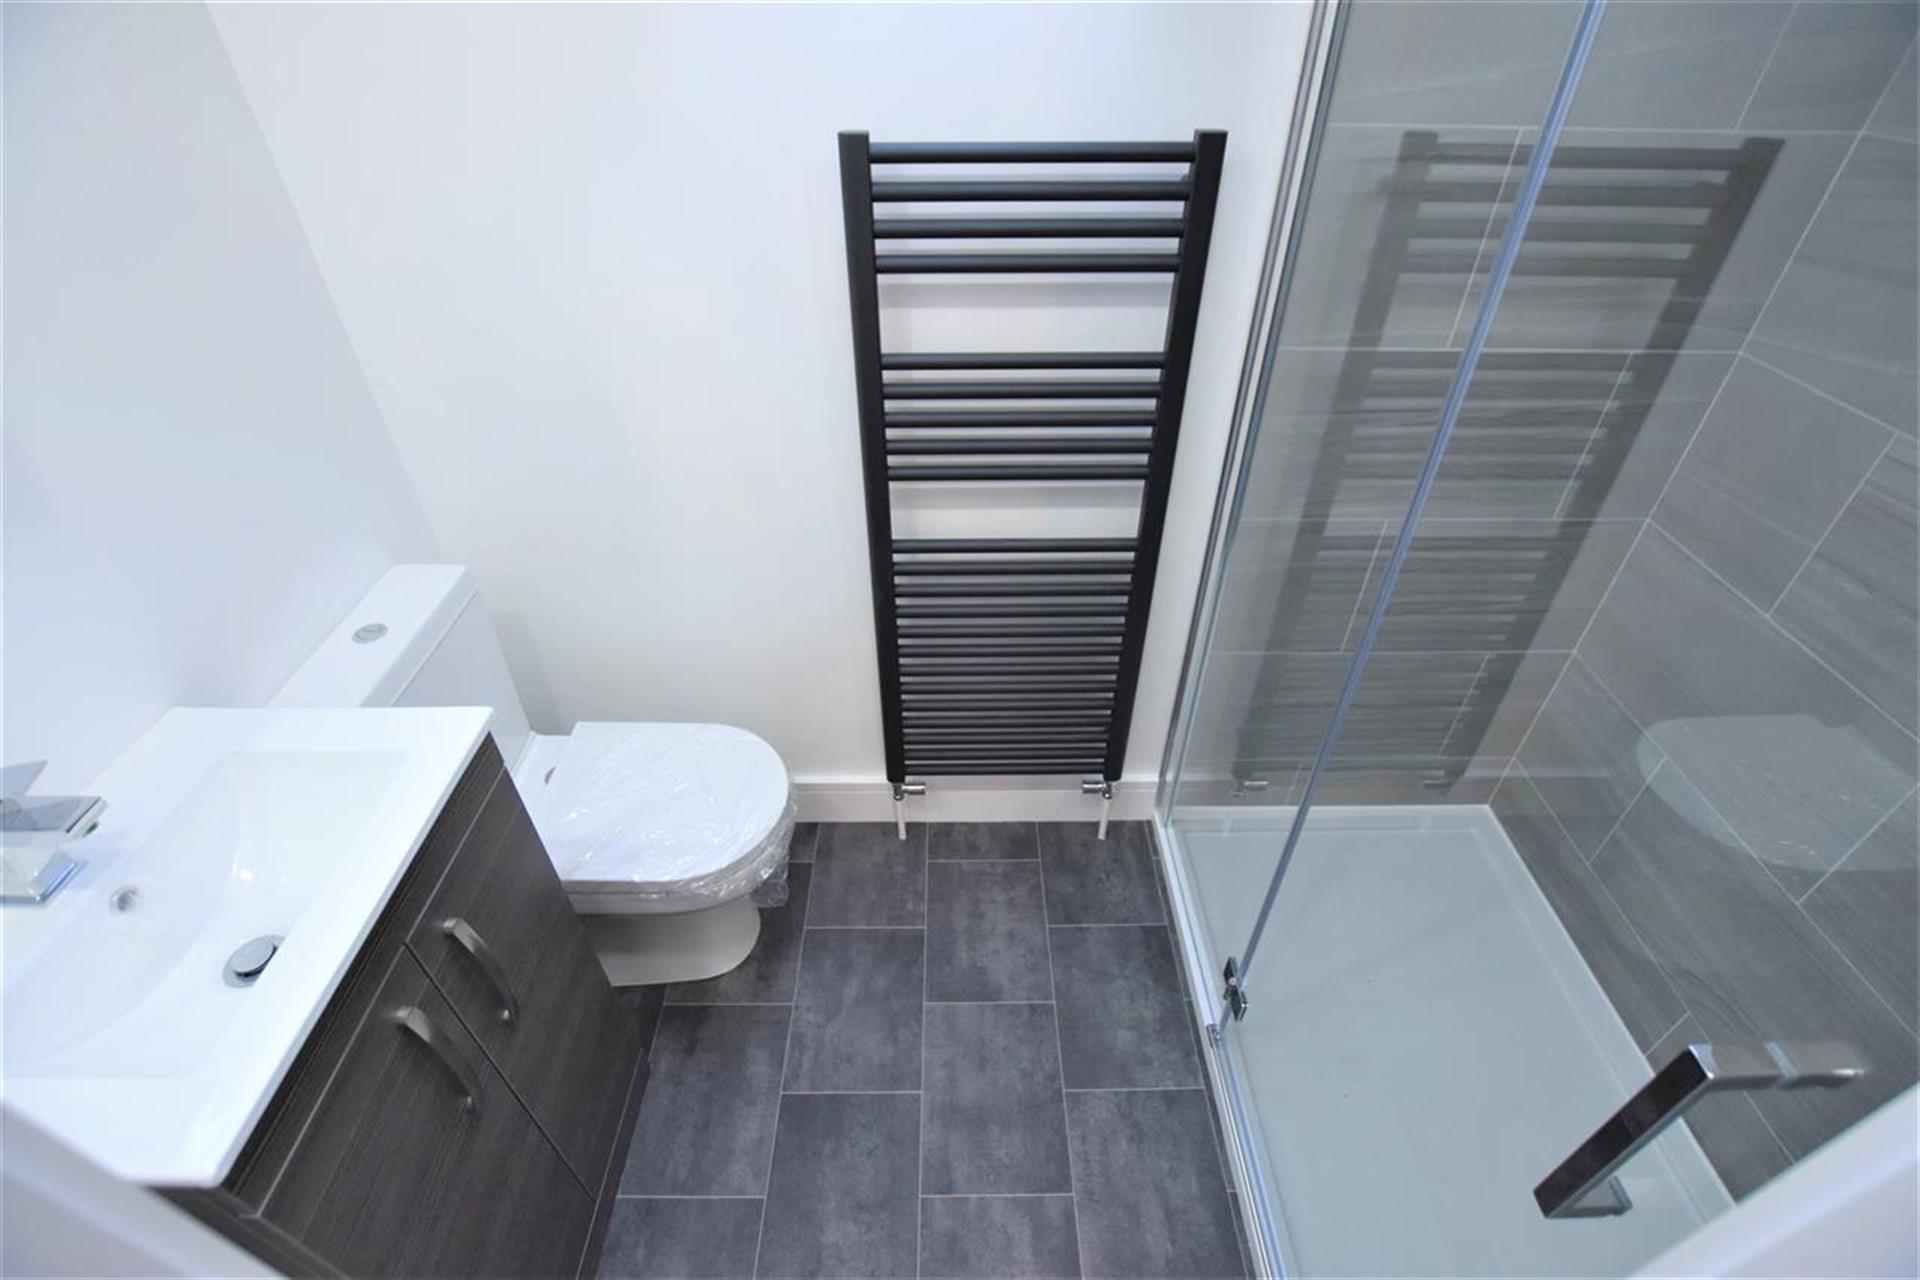 3 Bedroom House For Sale - Ensuite